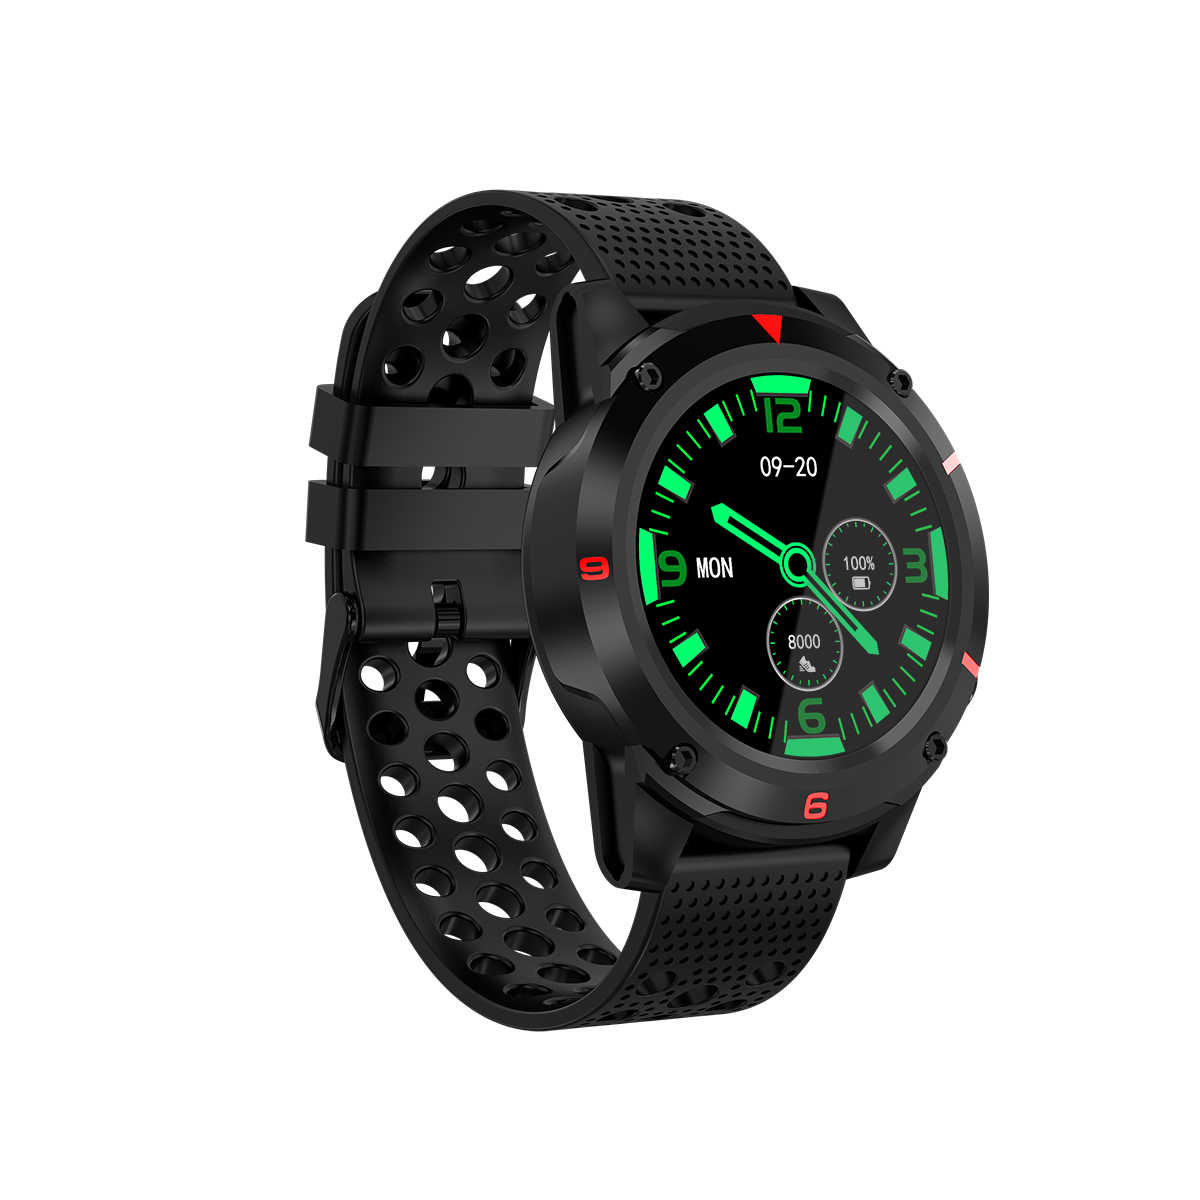 M26 1.3' bluetooth Call Smart Watch Phone Waterproof Heart Rate GPS/GLONASS-Compass Altimeter Activity Record Smart Watch Men